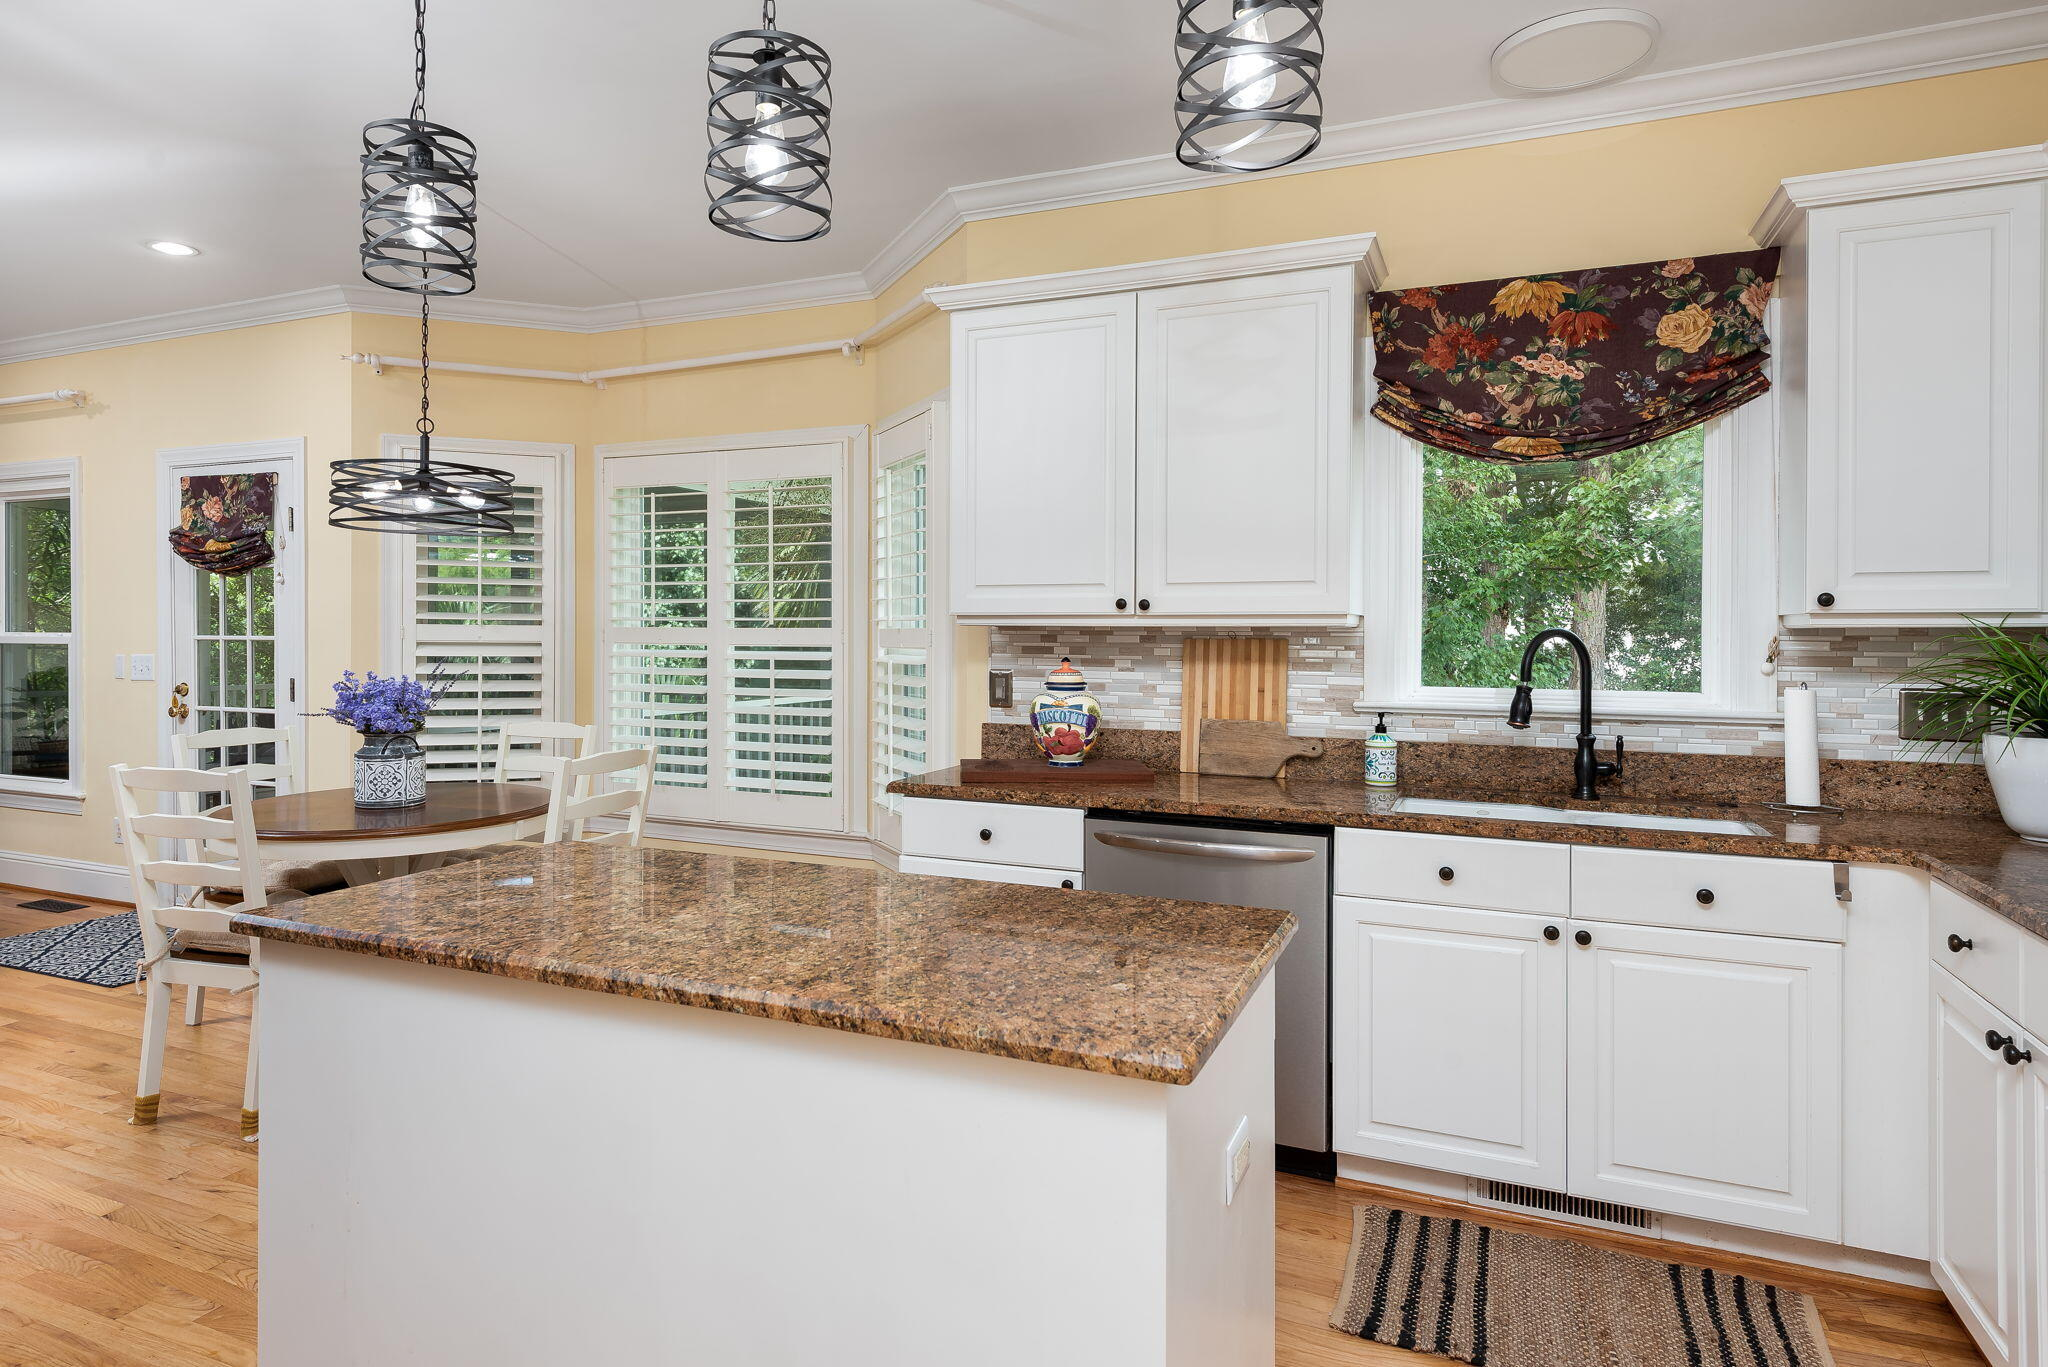 Rivertowne On The Wando Homes For Sale - 2301 Hartfords Bluff, Mount Pleasant, SC - 29